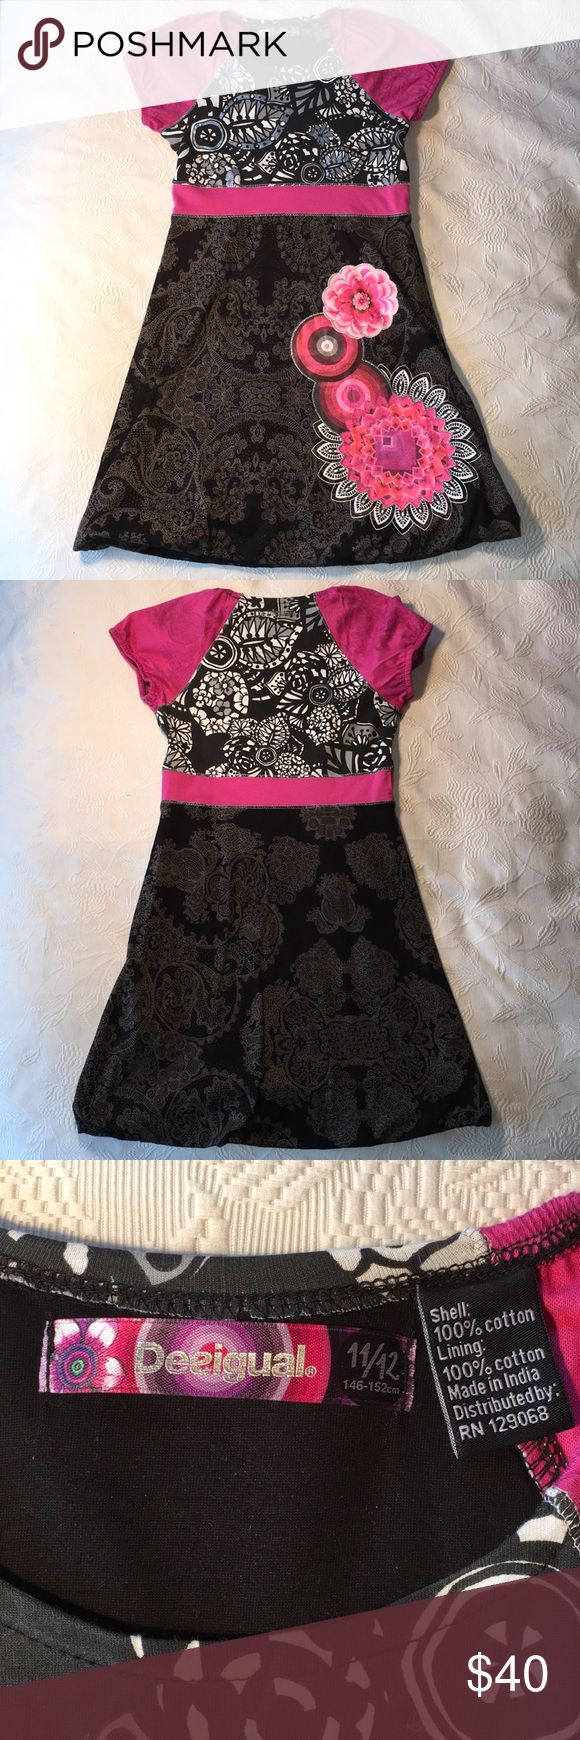 Desigual Girls' Dress. NWOT. 11/12 Fab, cute & comfy dress by Desigual for girls. 100% cotton with flower detail on skirt and very slight bubble detail at hem. Looks dressy enough for a party, feels good enough to play in - it's destined to be your daughter's new favorite dress! Desigual Dresses